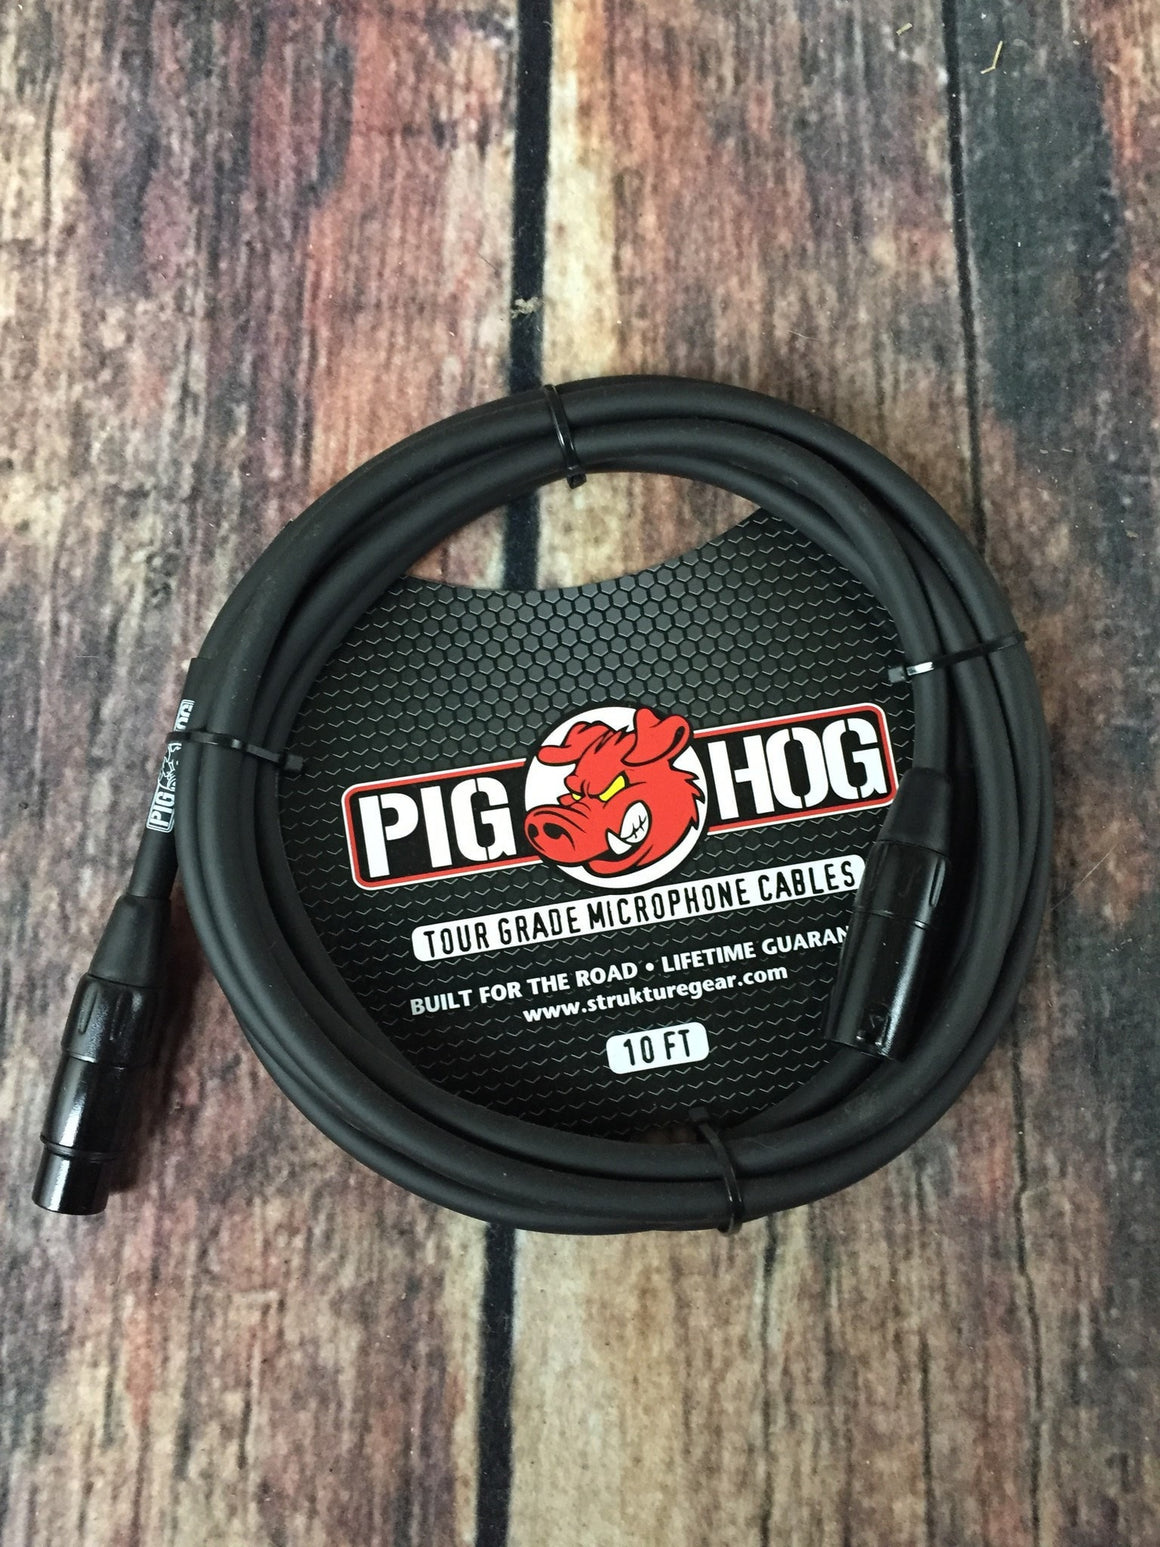 Pig Hog Microphone Cable Pig Hog PHM10 8mm 10ft XLR Microphone Cable